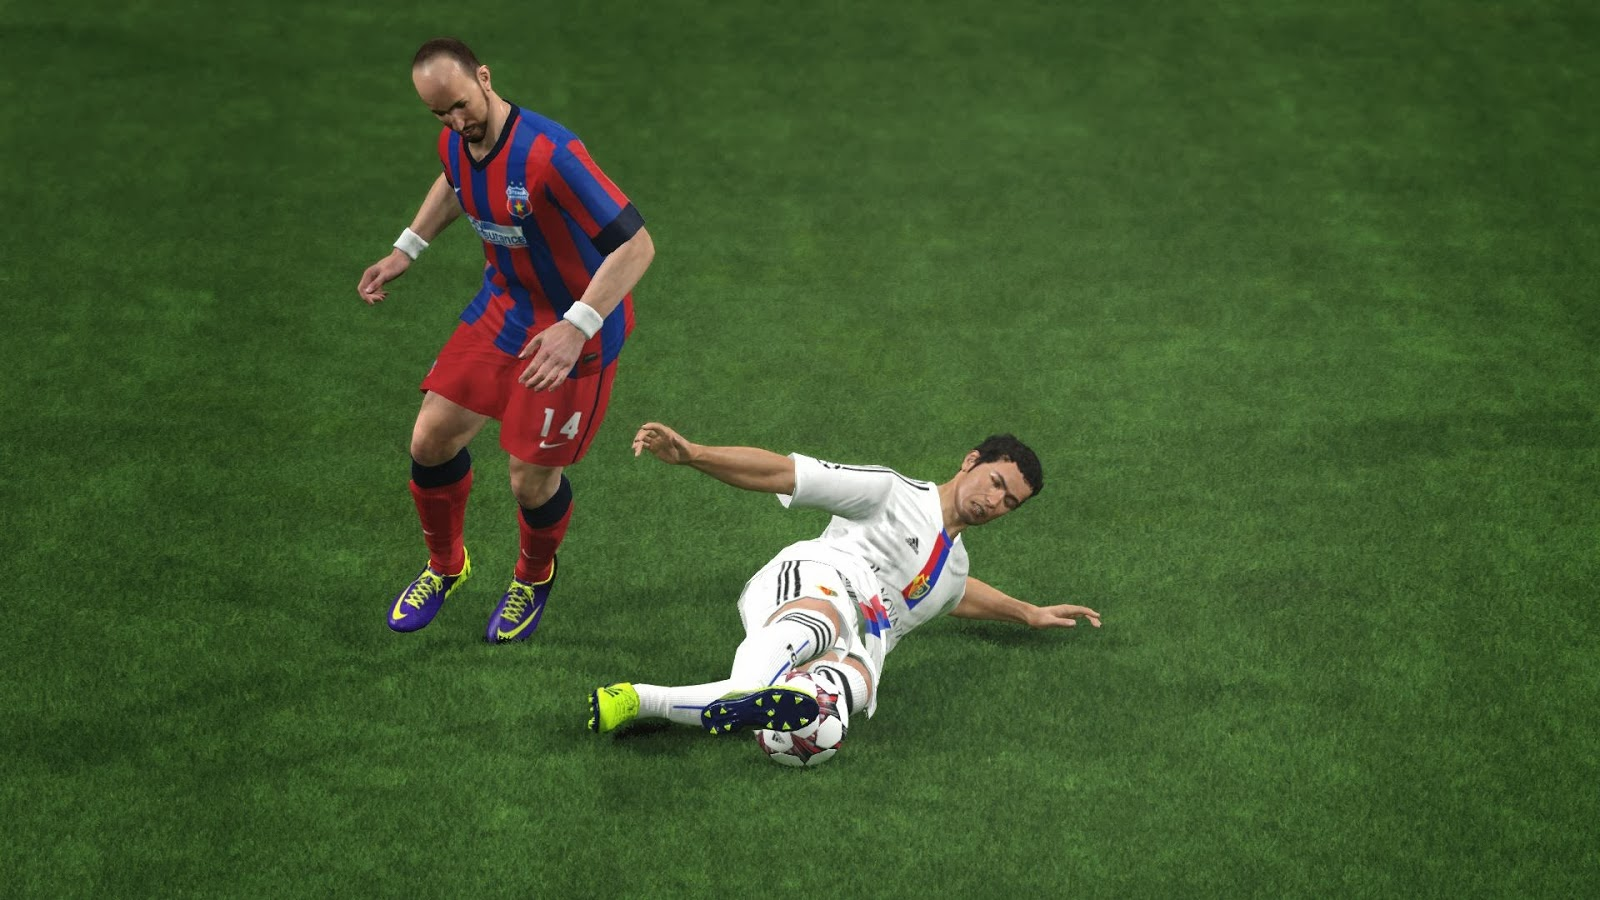 PES 2014 PESEdit Patches - PESPatchscom PES Patch